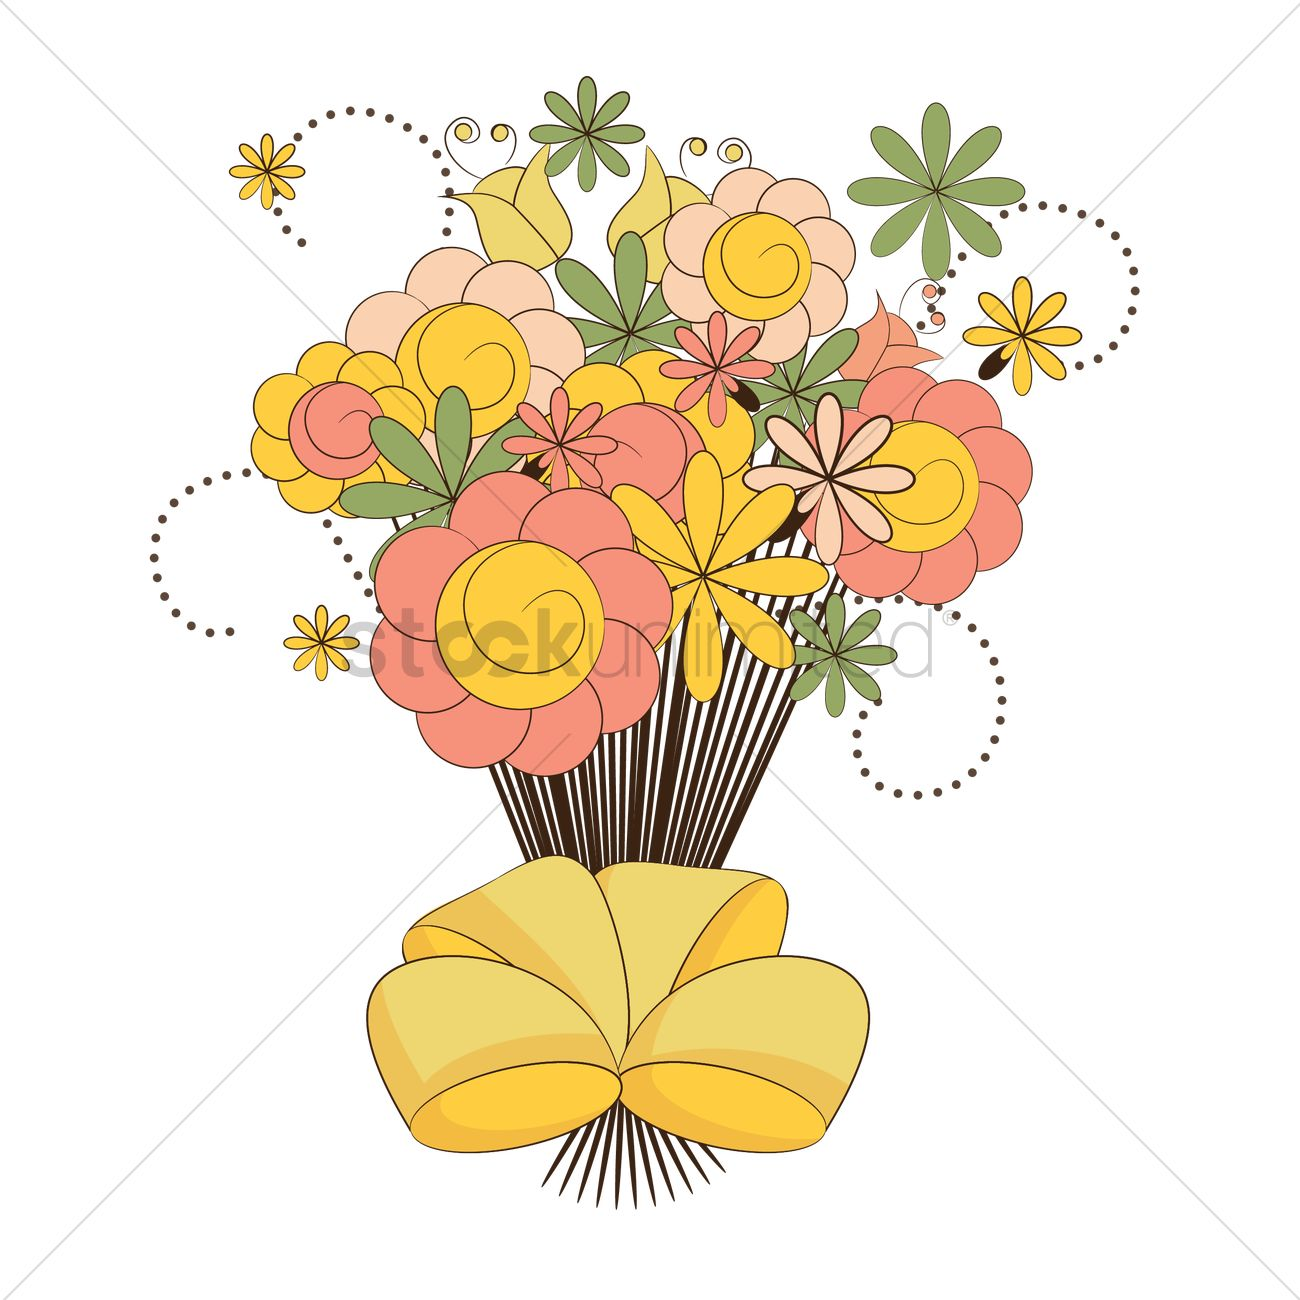 Flower Bouquet Vector Image 1359447 Stockunlimited